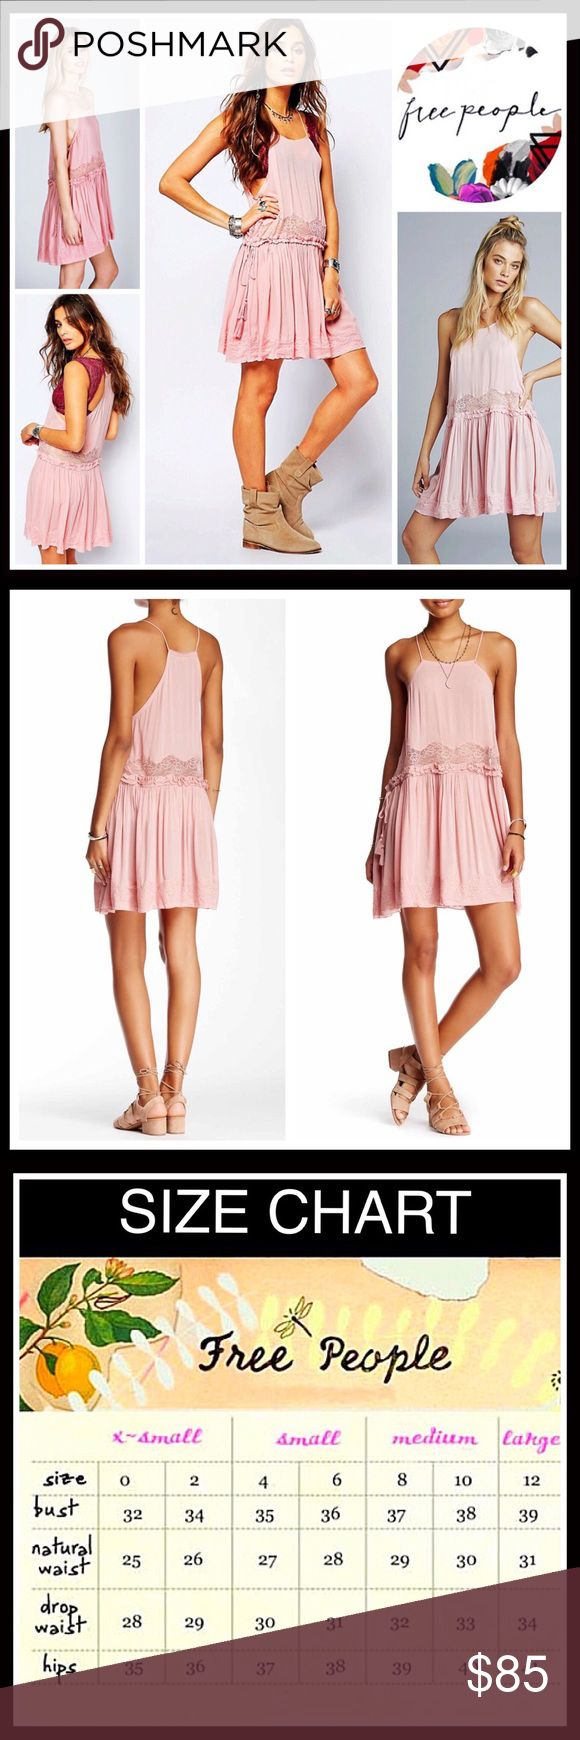 """FREE PEOPLE Slip Dress Crochet Lace Trim NEW WITH TAGS SIZING-Subtly oversized, XS = 0-2, L =12-14 FREE PEOPLE Slip Dress  * Racerback back & thin straps  * Square neck; Side tie details  * Pullover style & a relaxed fit   * Approx 33"""" long;  Lace trim hem & inset at waist  * Lightweight opaque fabric *  Crochet floral lace detail Fabric-100% rayon; Color- Pink   Search # Vintage like sun eyelet fit and flare slip cutout cocktail  No Trades ✅ Offers Considered/Bundle Discounts ✅ Free People…"""